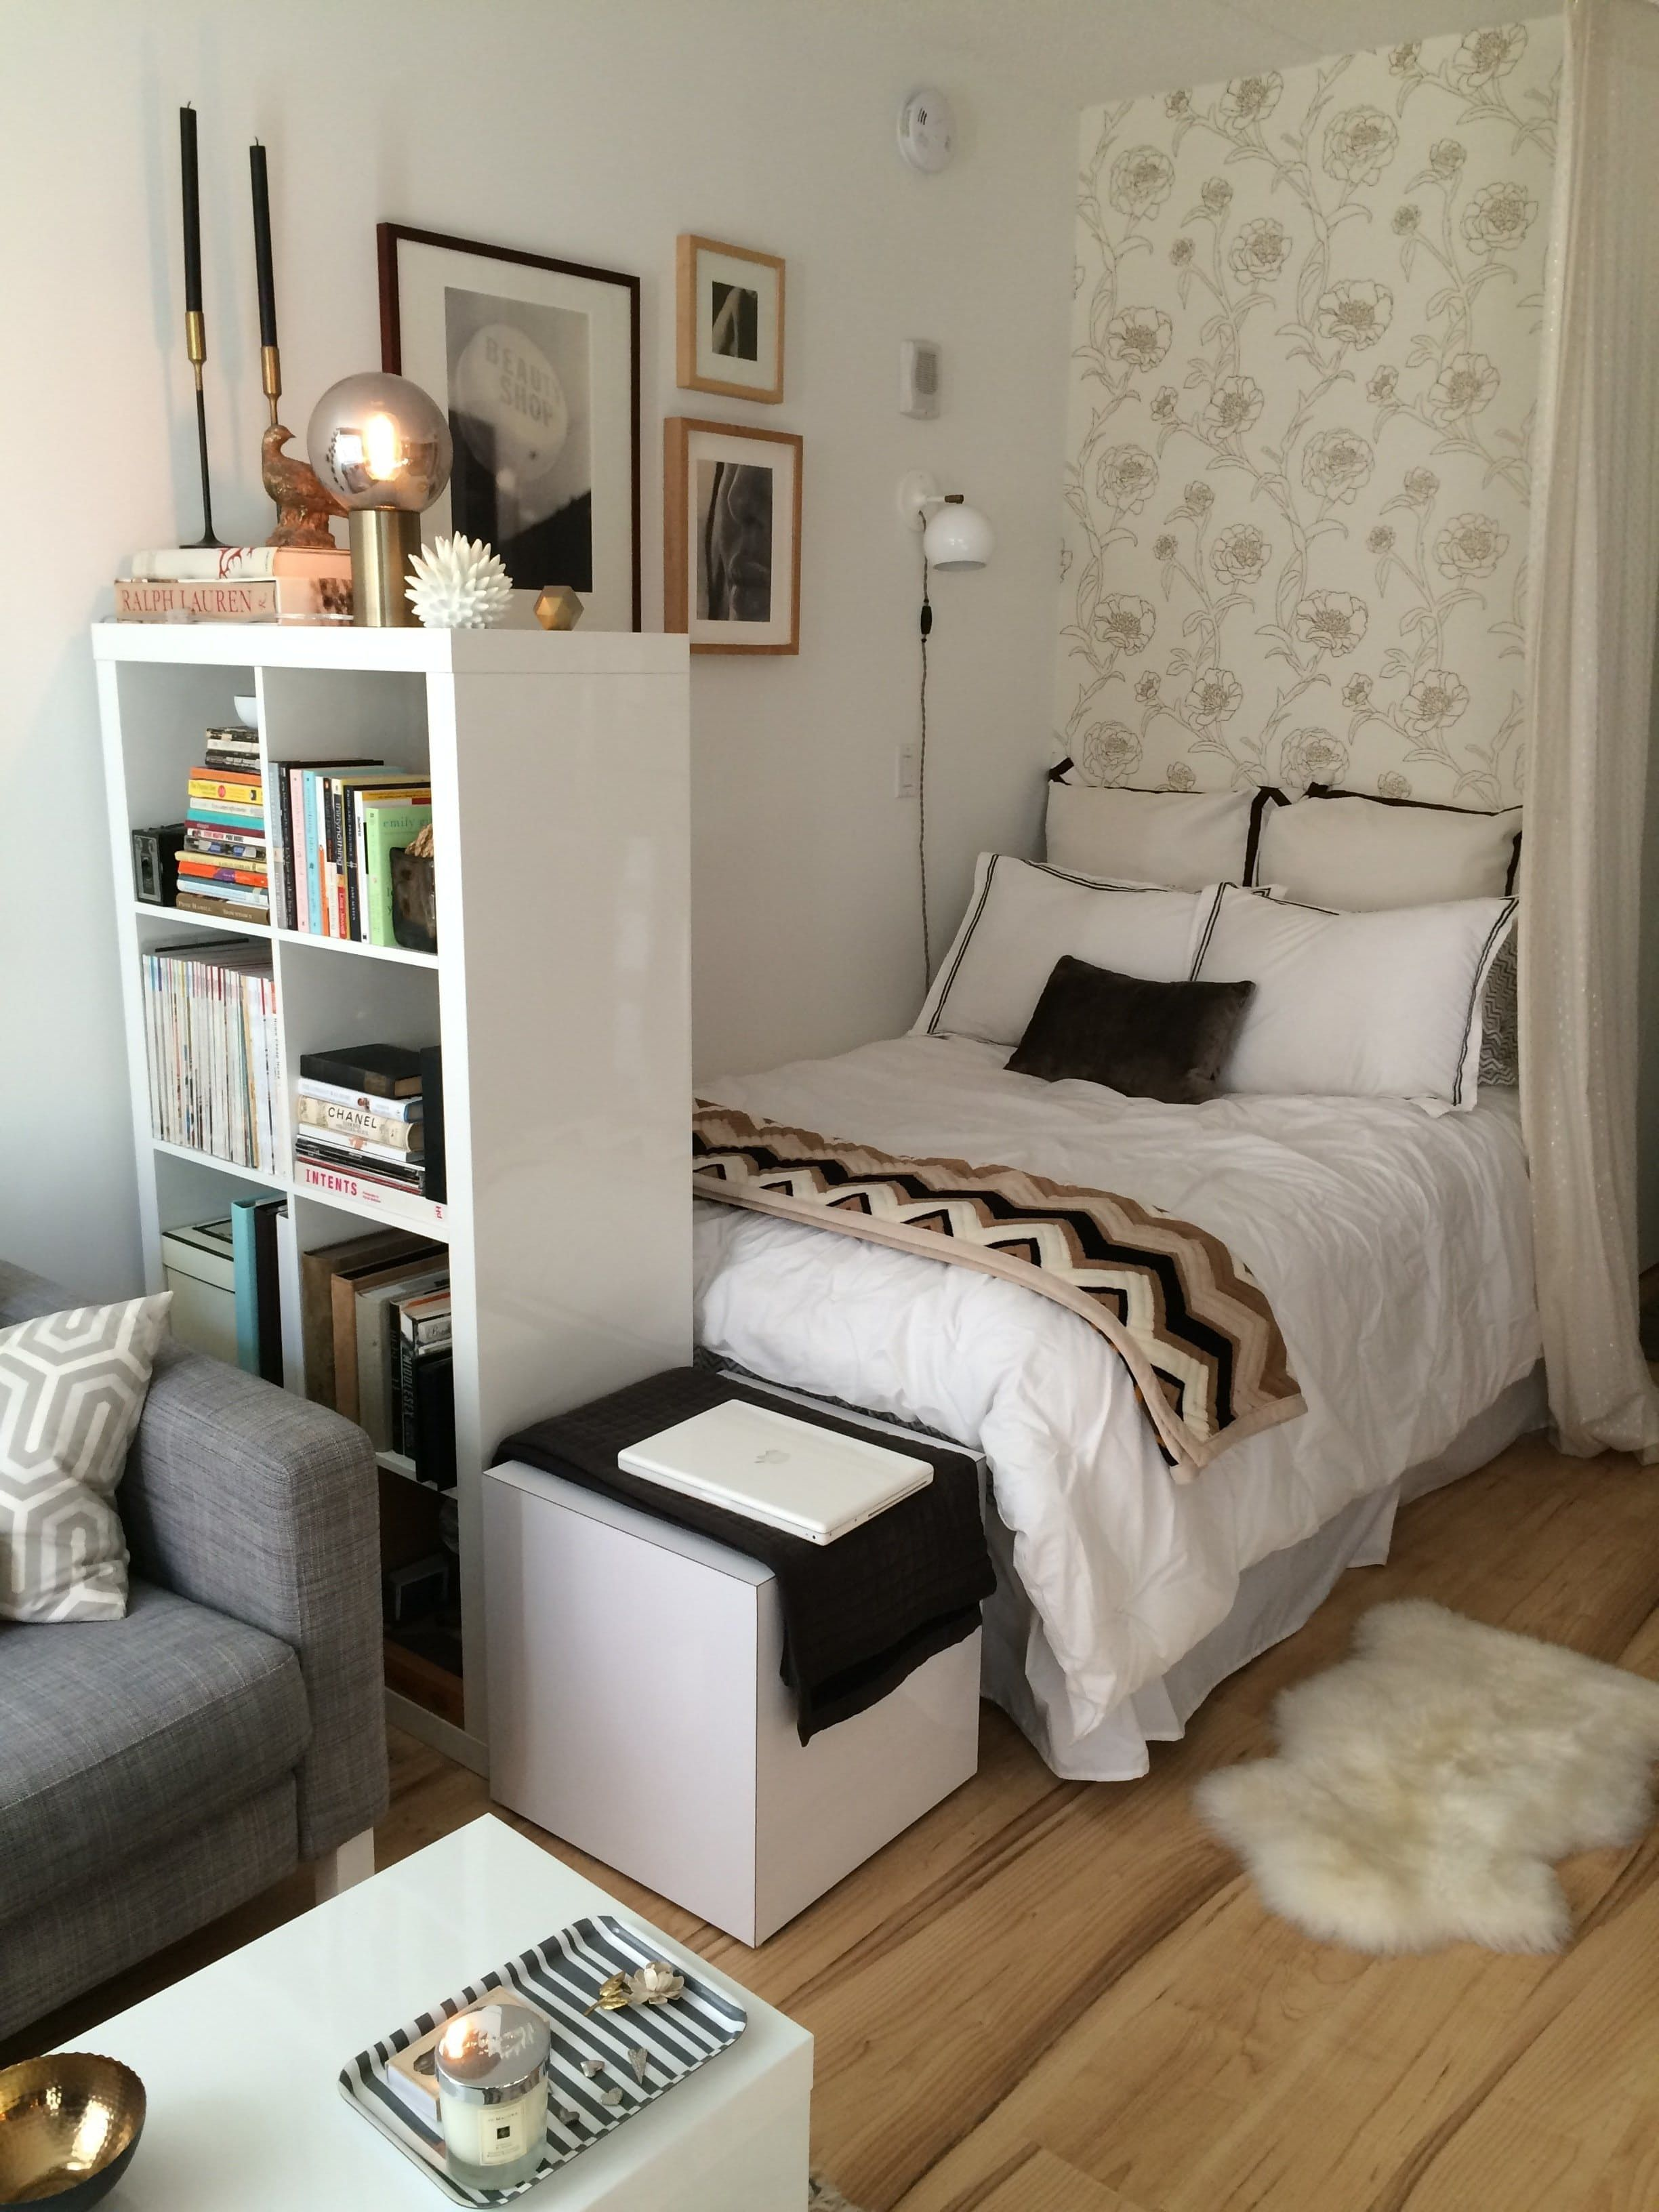 Diy Ideas For Making A Home On A New Grad S Budget New Room